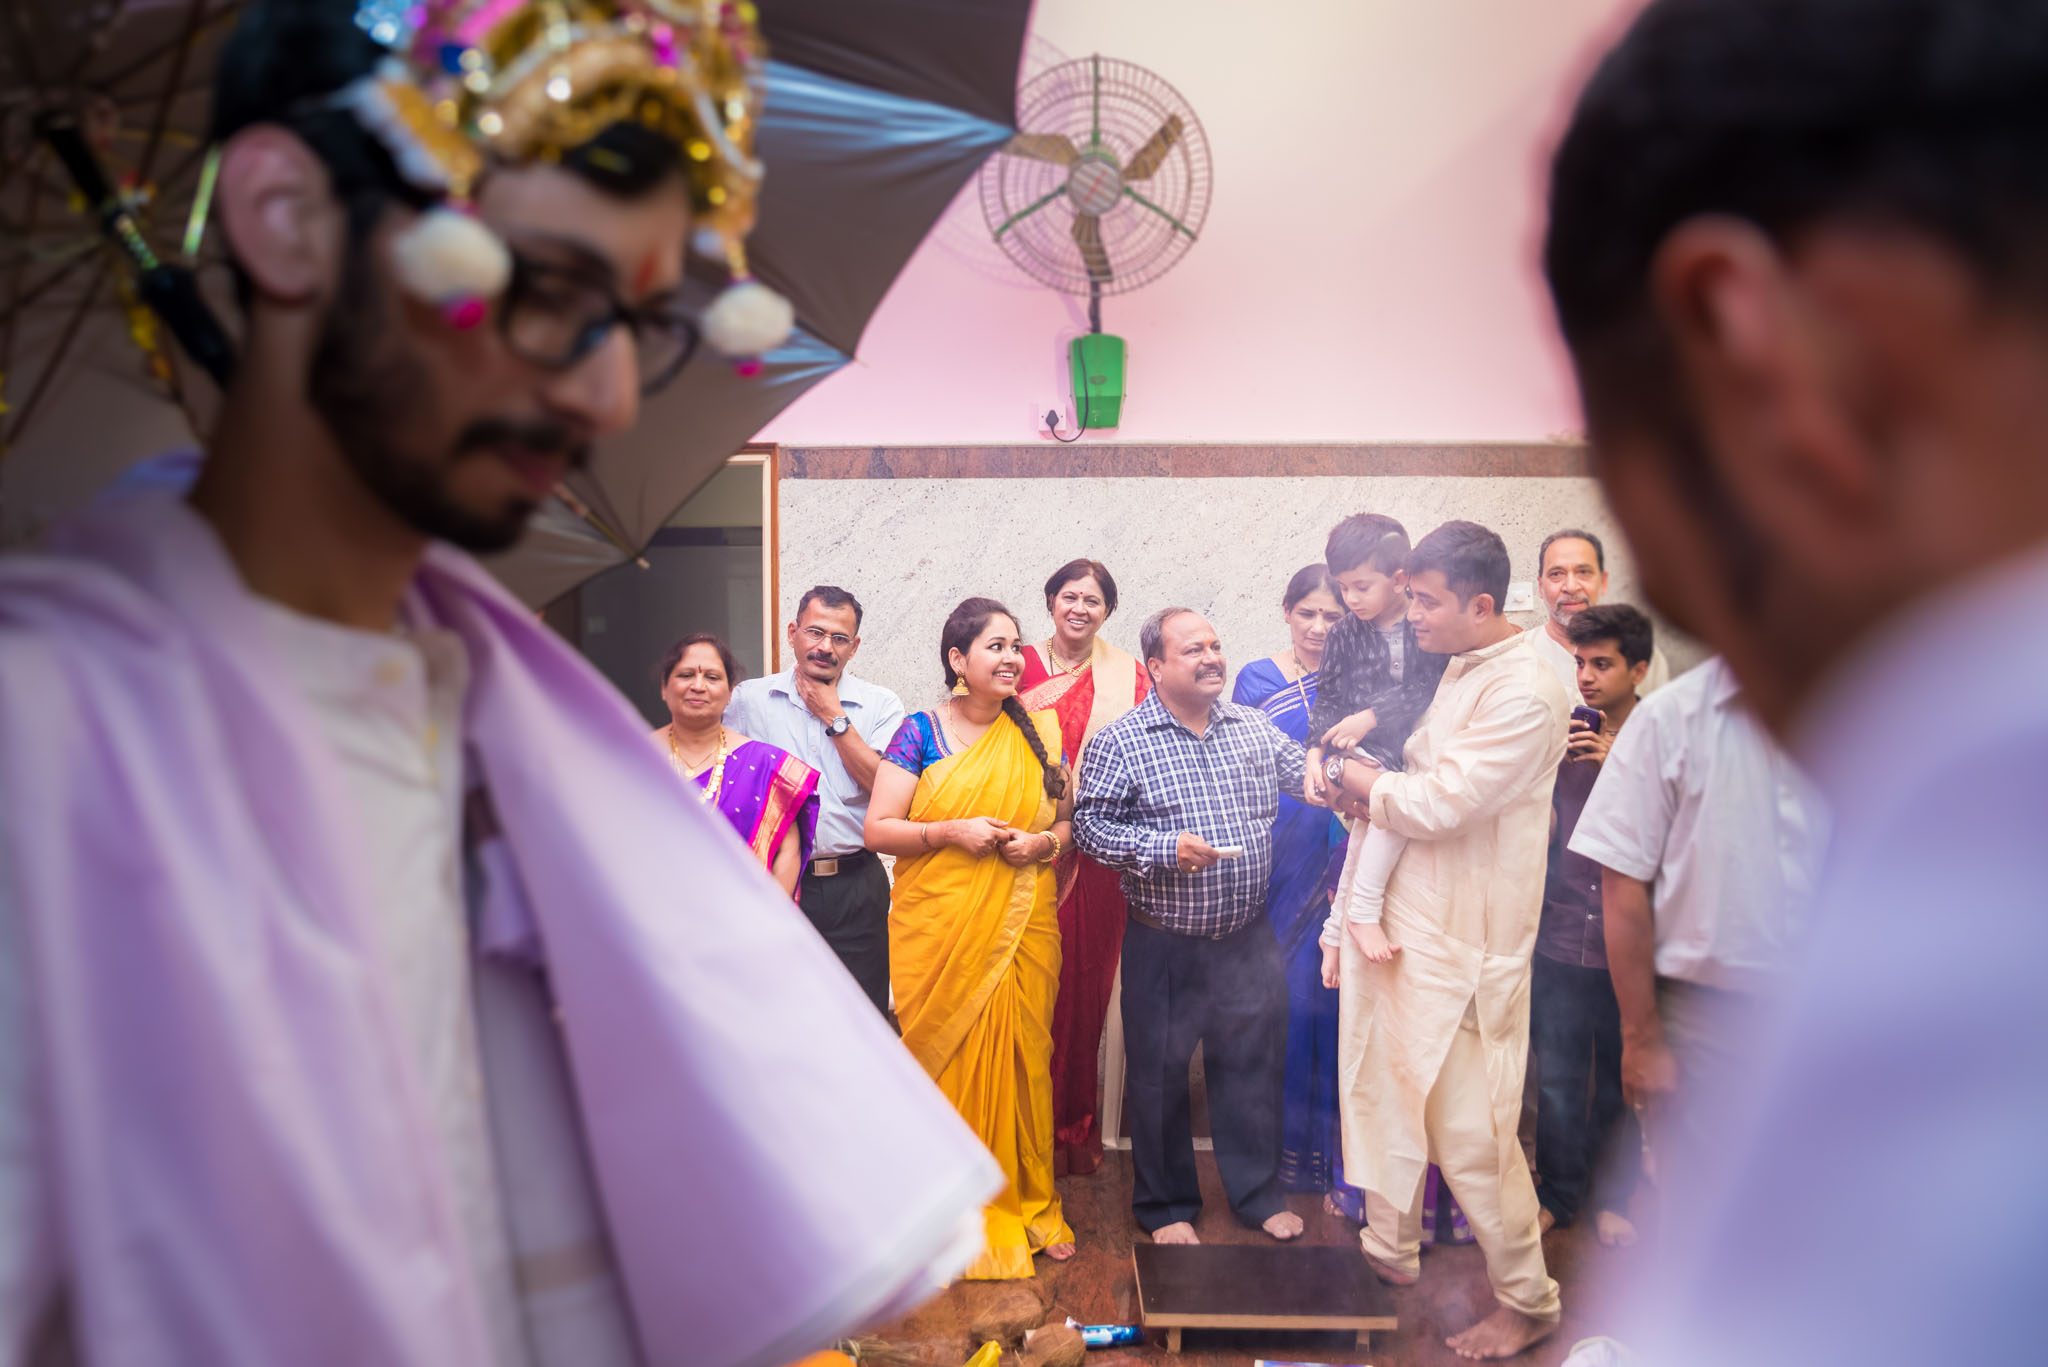 WhatKnot-Candid-Wedding-Photography-Mumbai-Bangalore-103